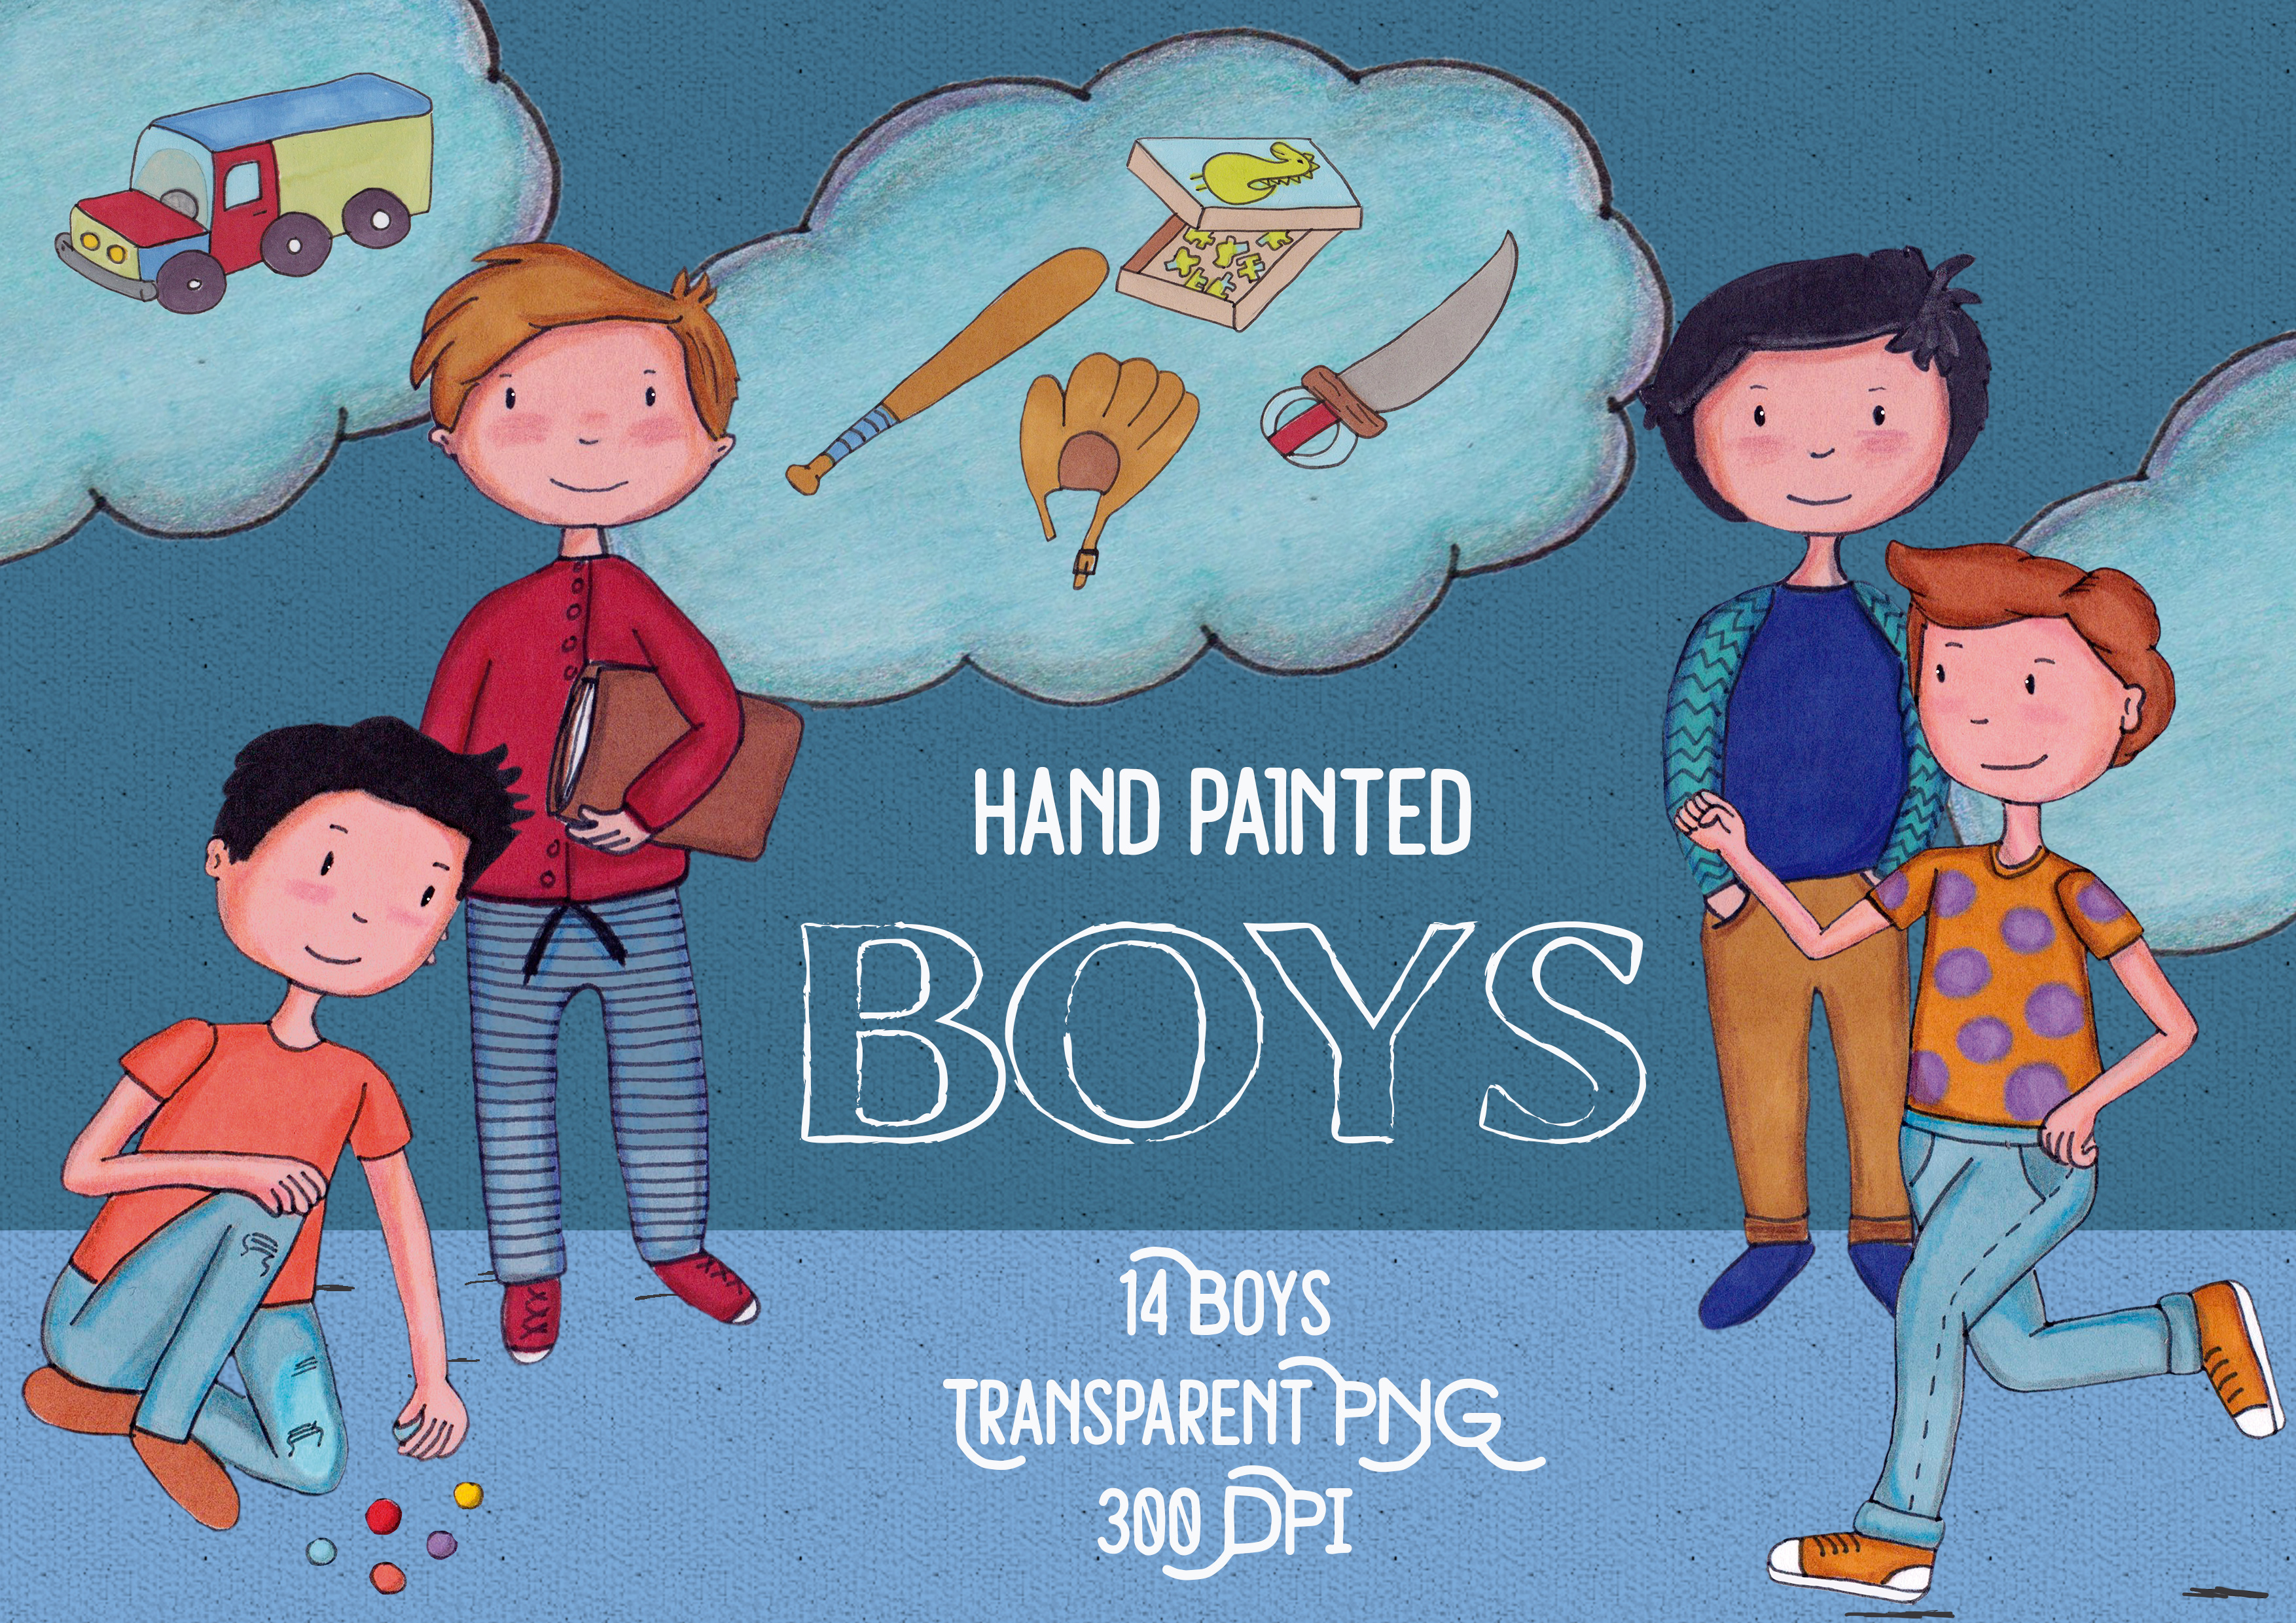 Boys hand painted example image 2